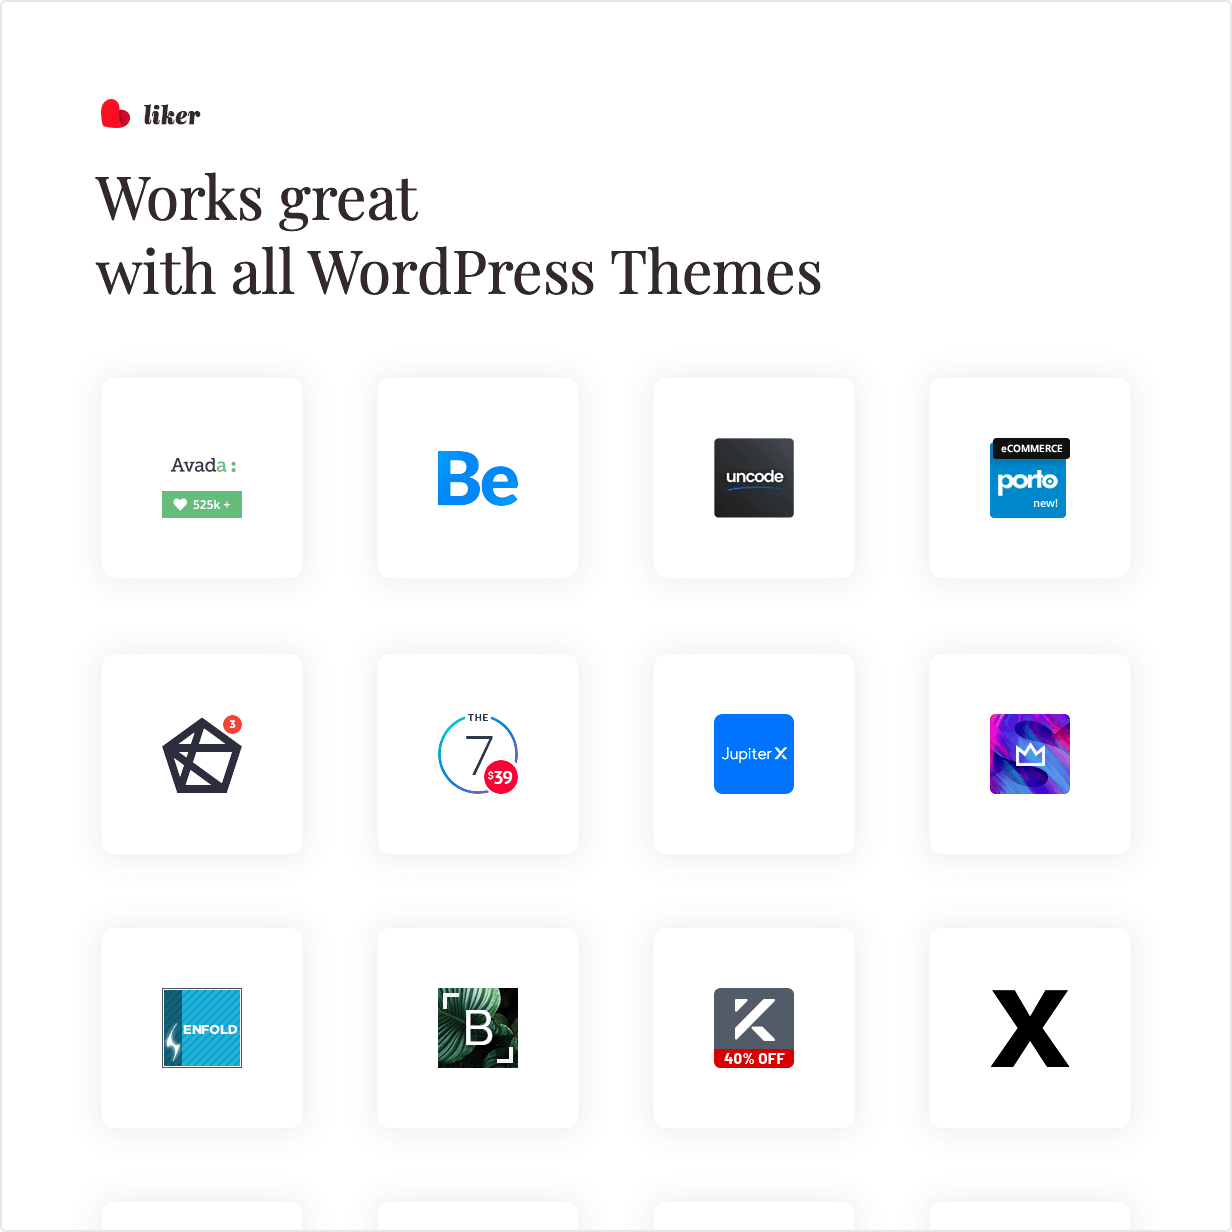 Works great with all WordPress Themes